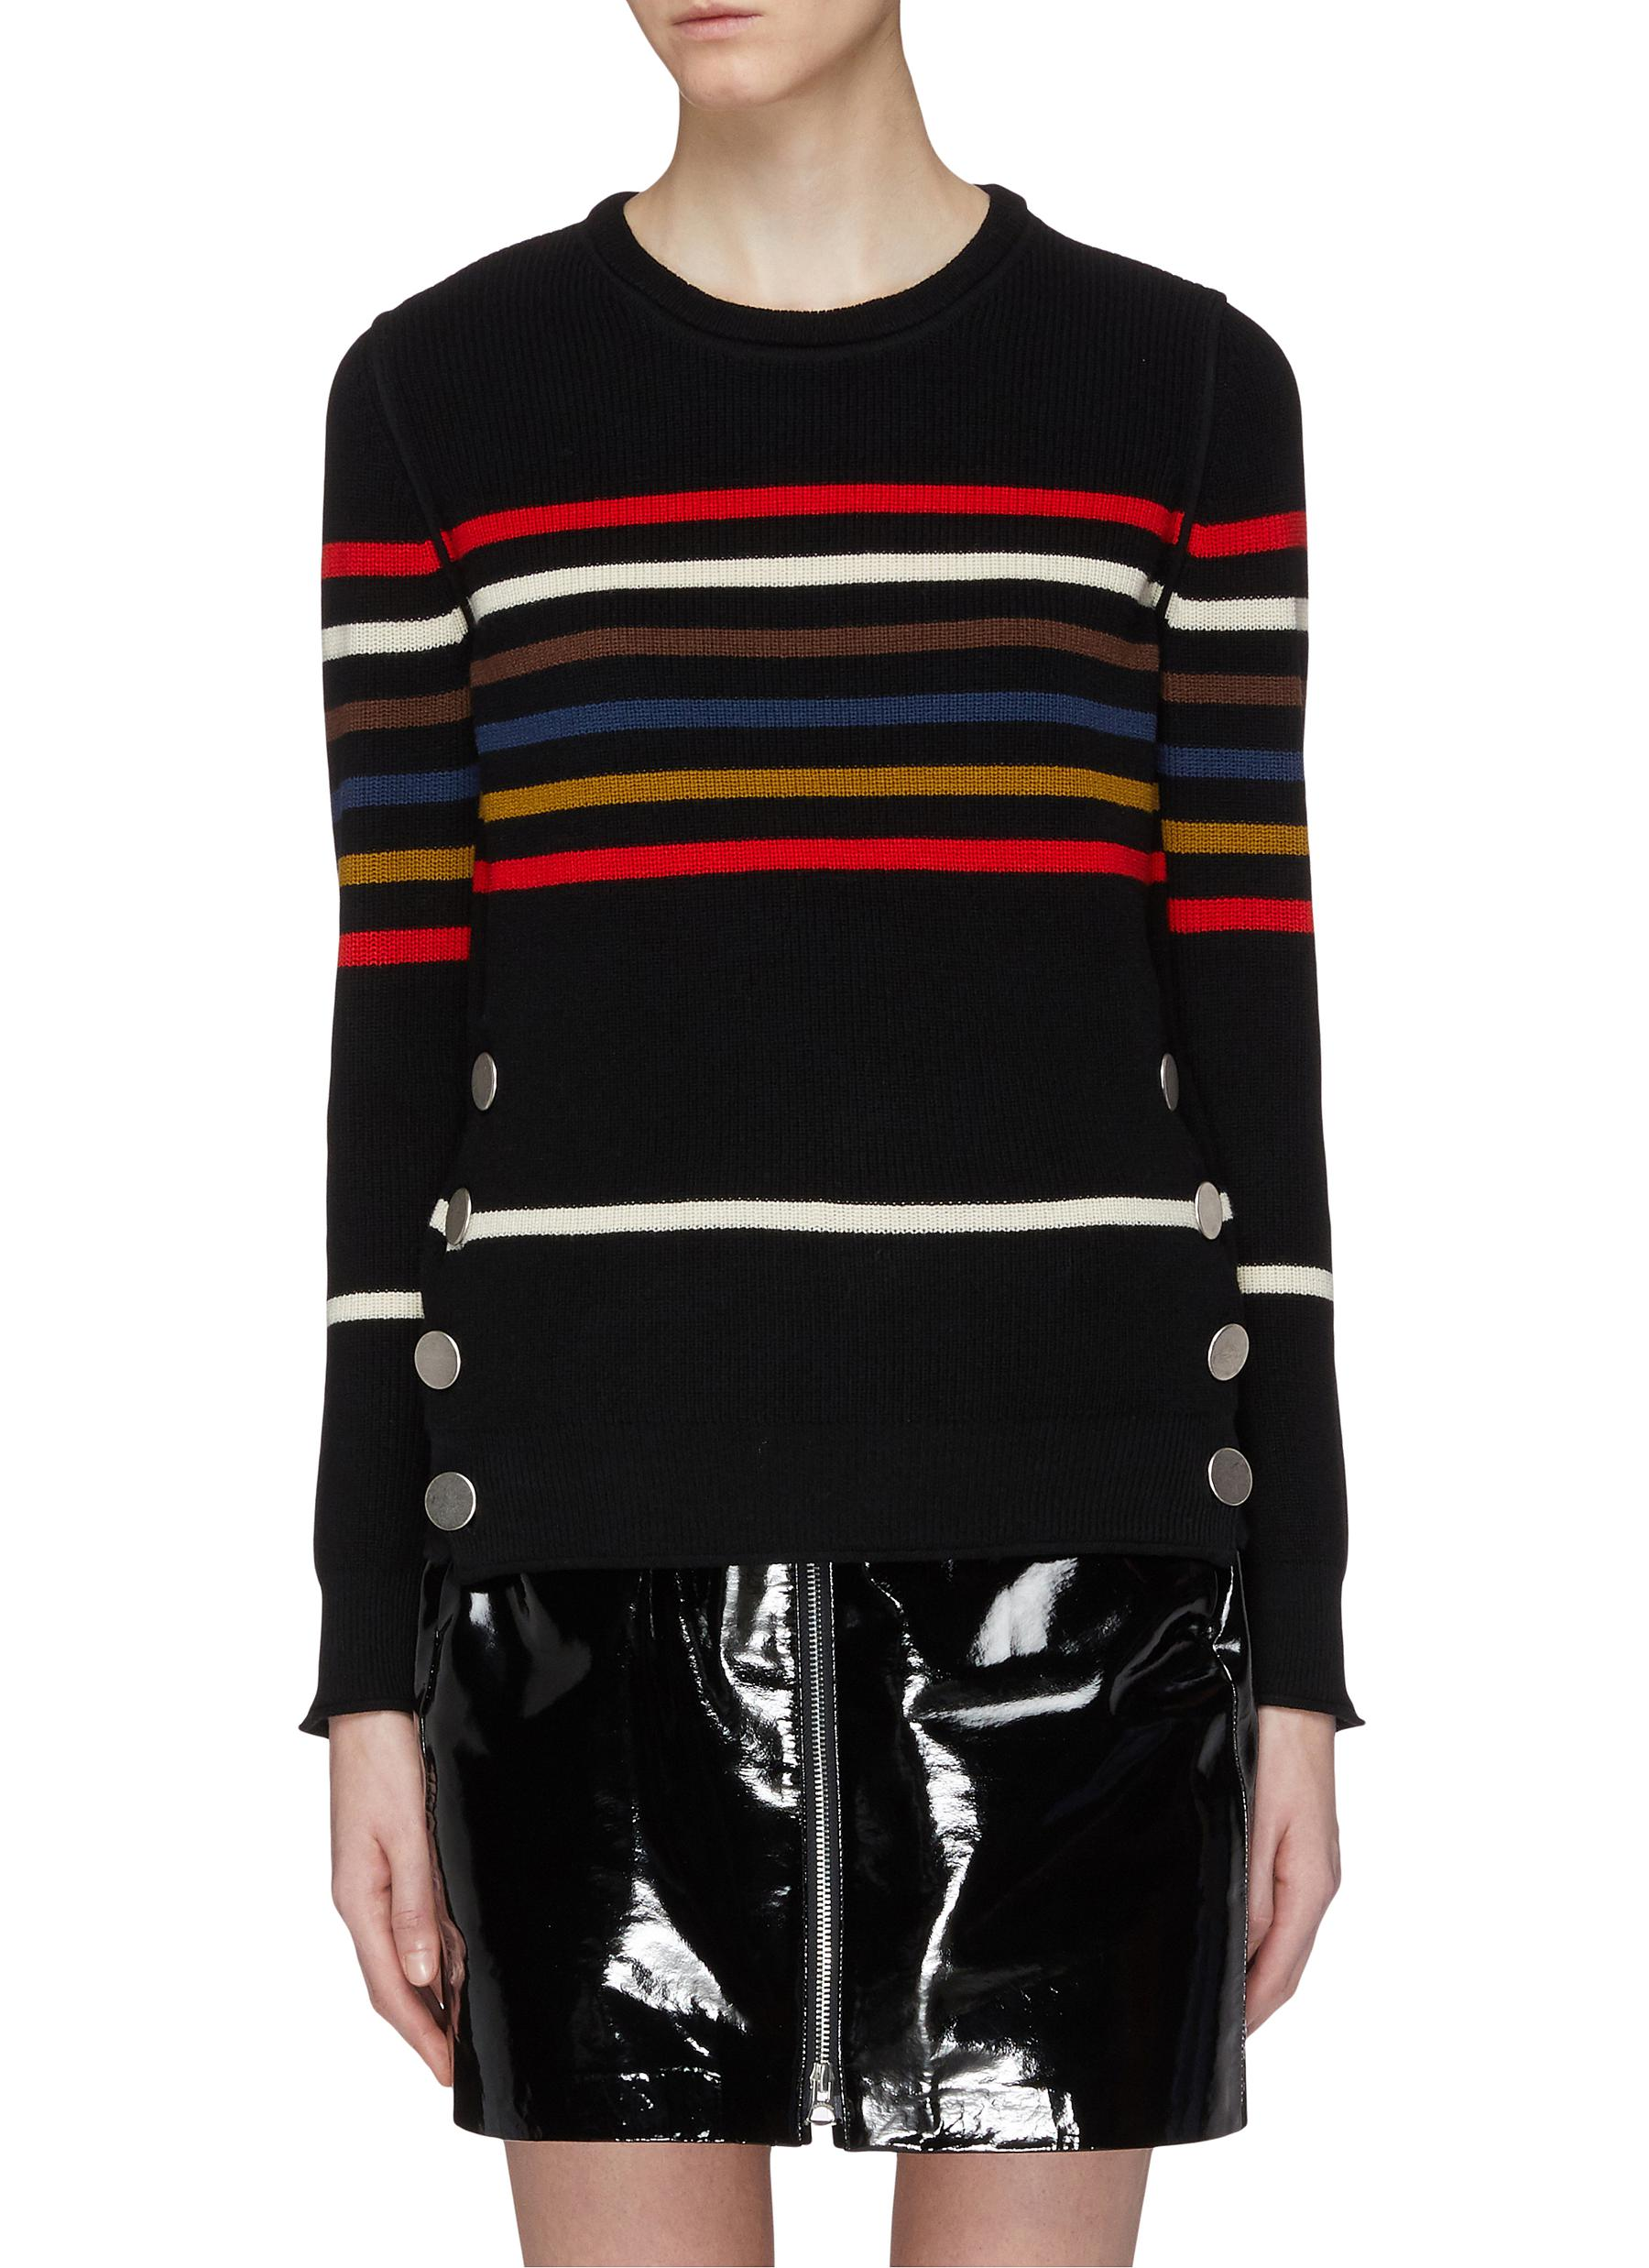 eaa3a73ee9 Main View - Click To Enlarge - SONIA RYKIEL - Mock button hem stripe sweater